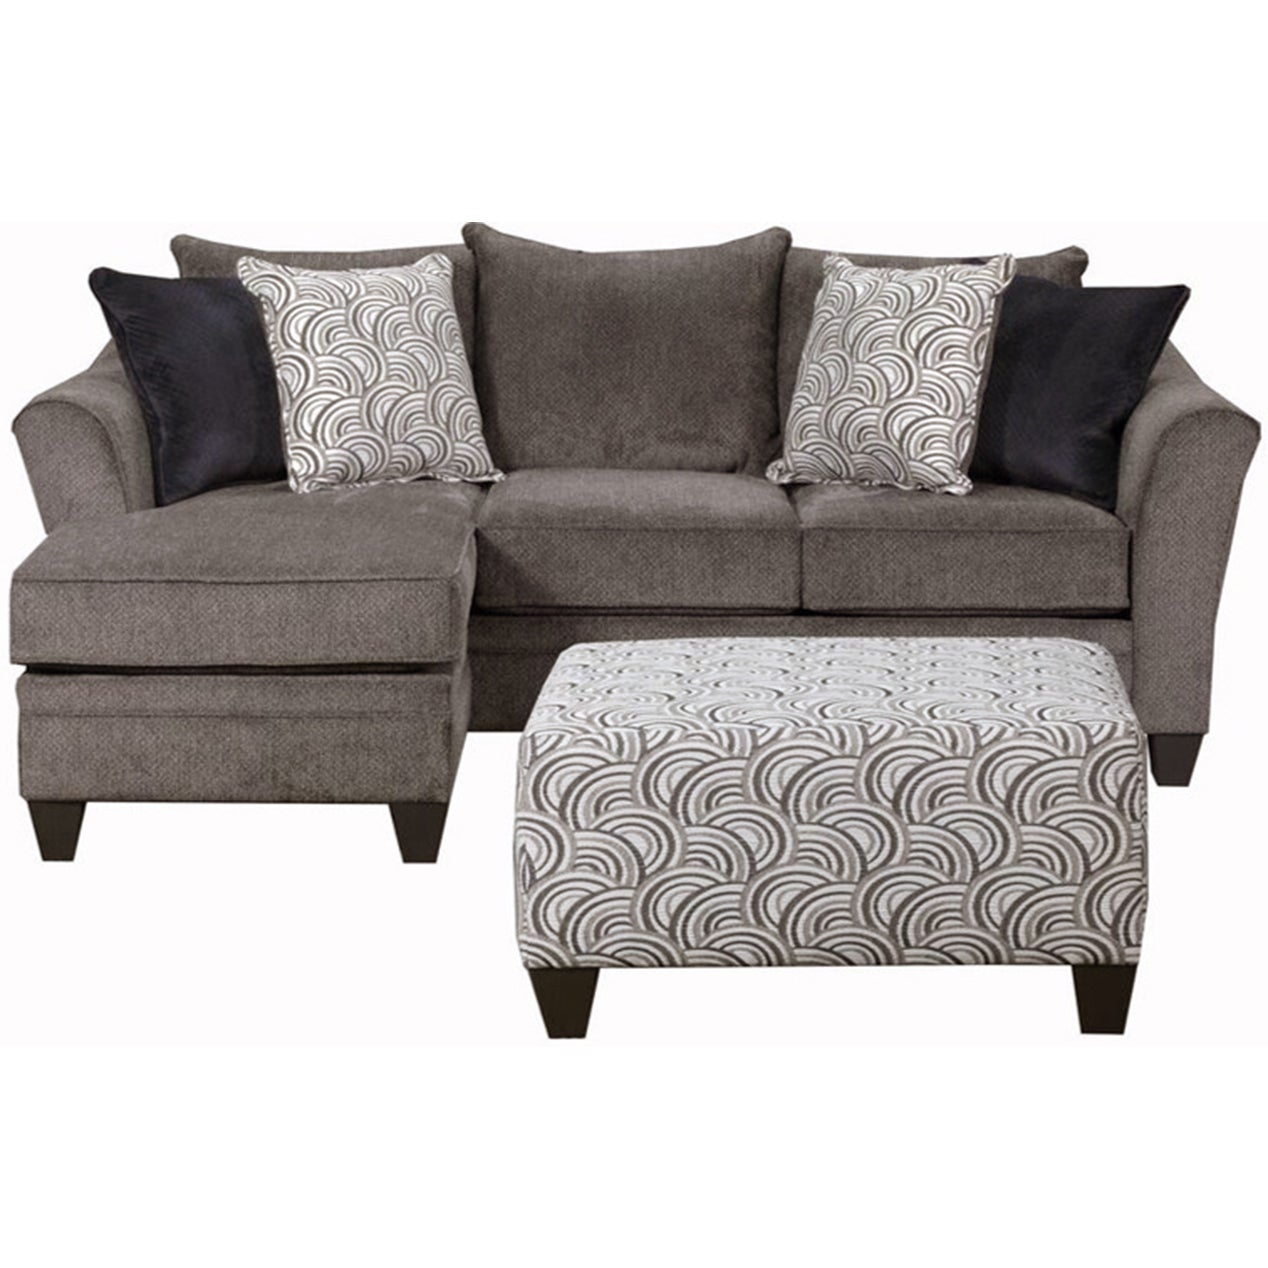 Simmons Upholstery Albany Pewter Sofa Chaise   Free Shipping Today    Overstock   20993460